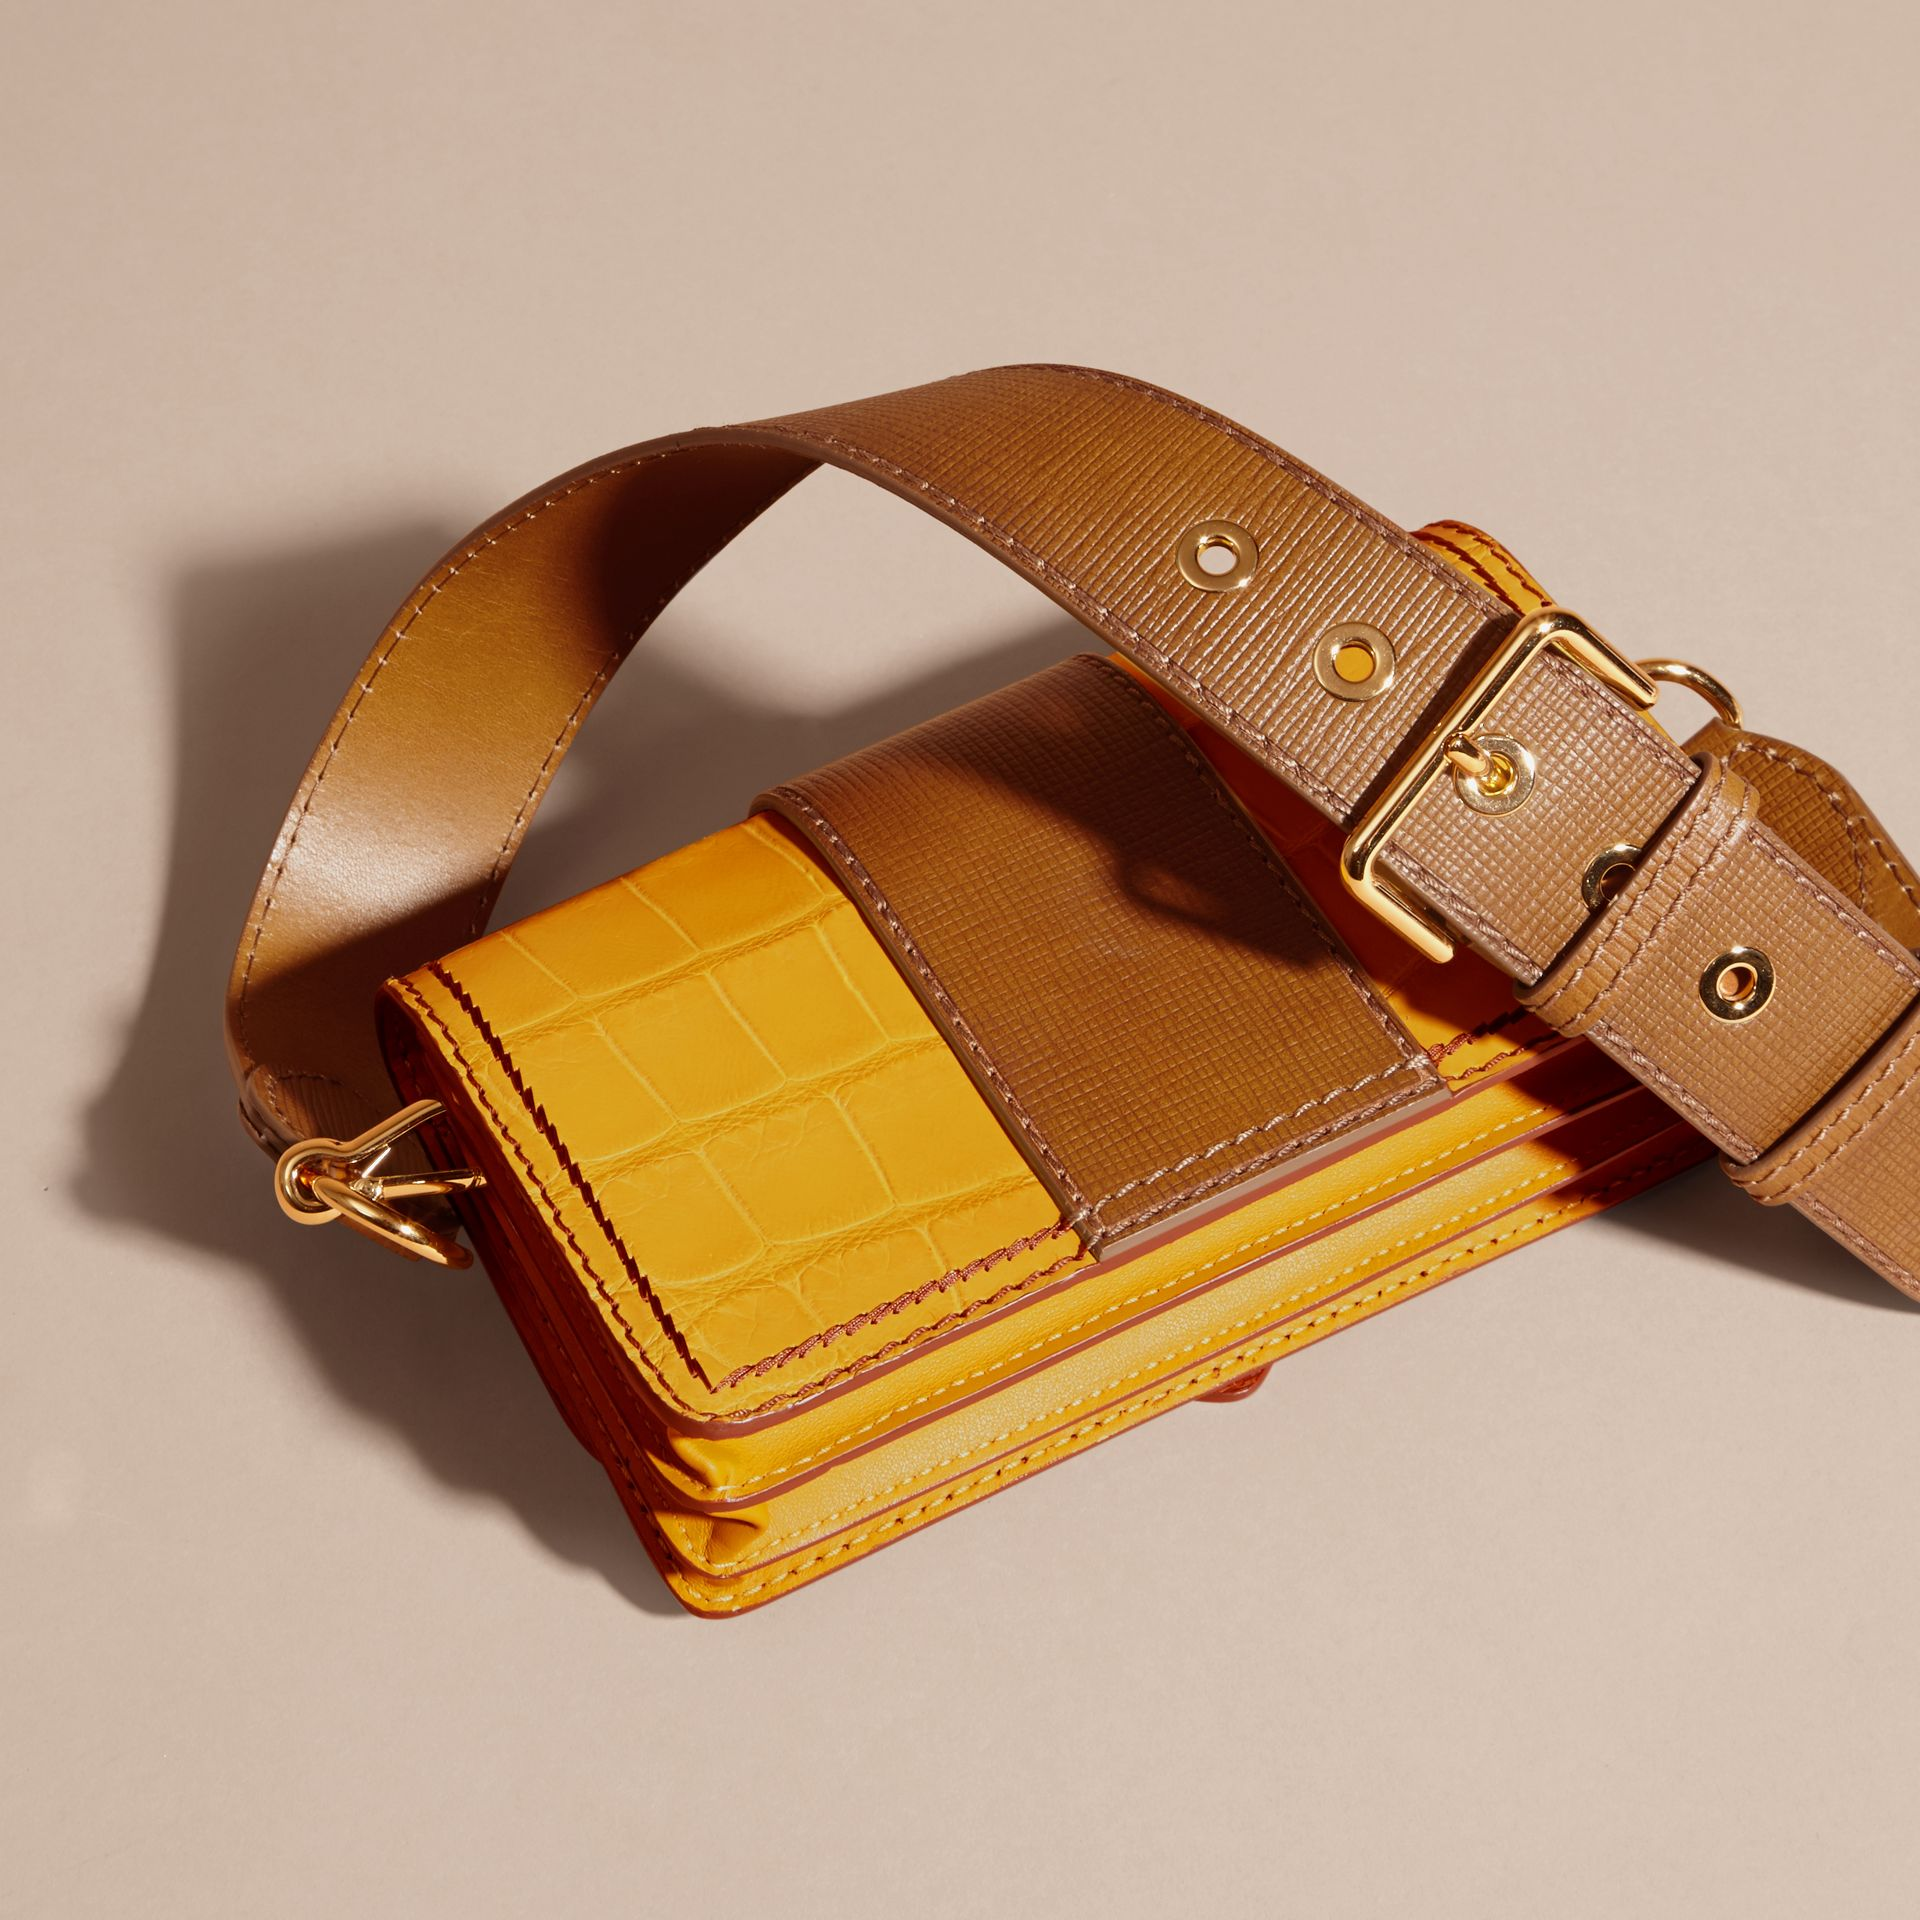 The Small Buckle Bag in Alligator and Leather in Citrus Yellow / Tan - Women | Burberry - gallery image 5